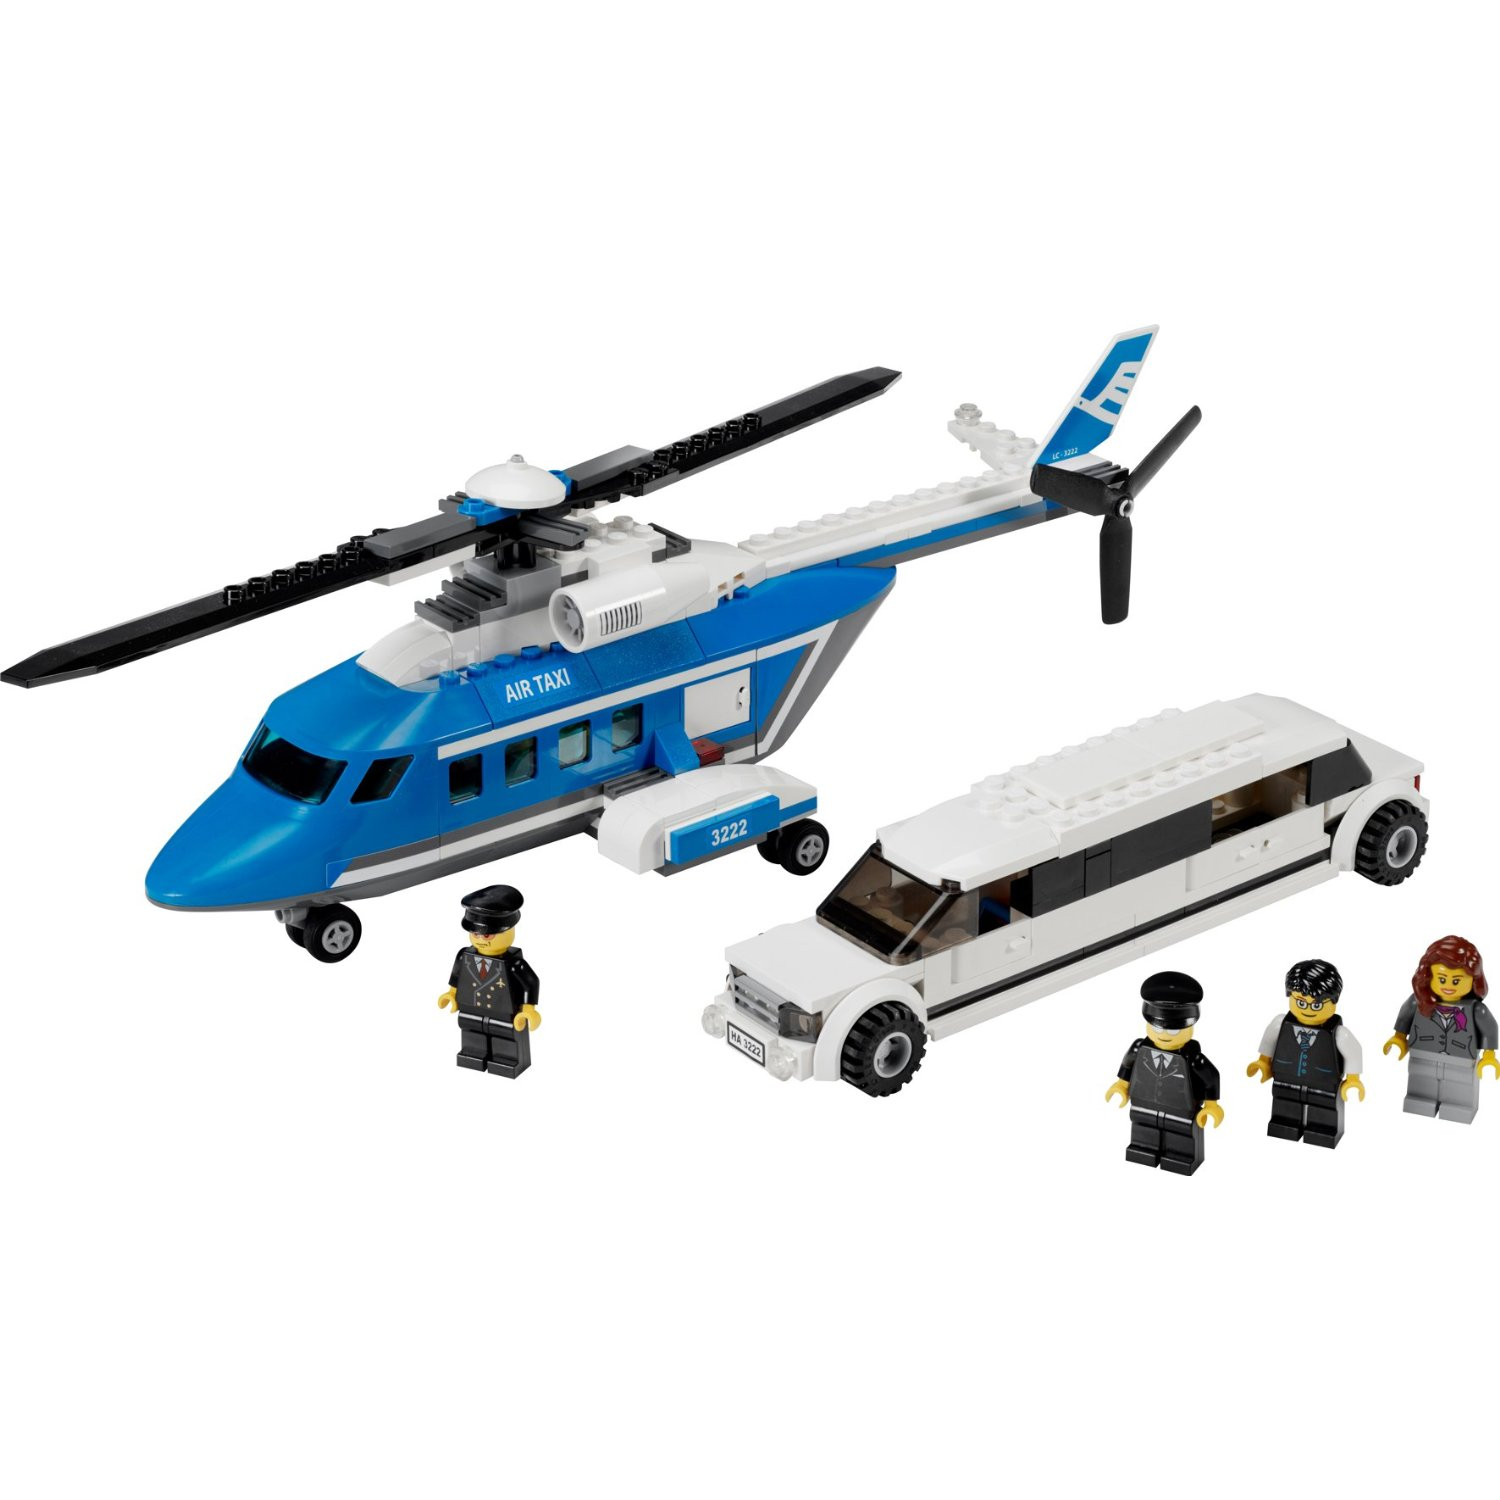 lego helicopter instructions with Set Database Lego 3222 Helicopter And on Watch likewise Cargo Plane also Telehandler 42061 together with File LEGO AH 64 Apache furthermore 60049 Helicopter Transporter 0dc0f551e4d14bc490797aee338969bb.